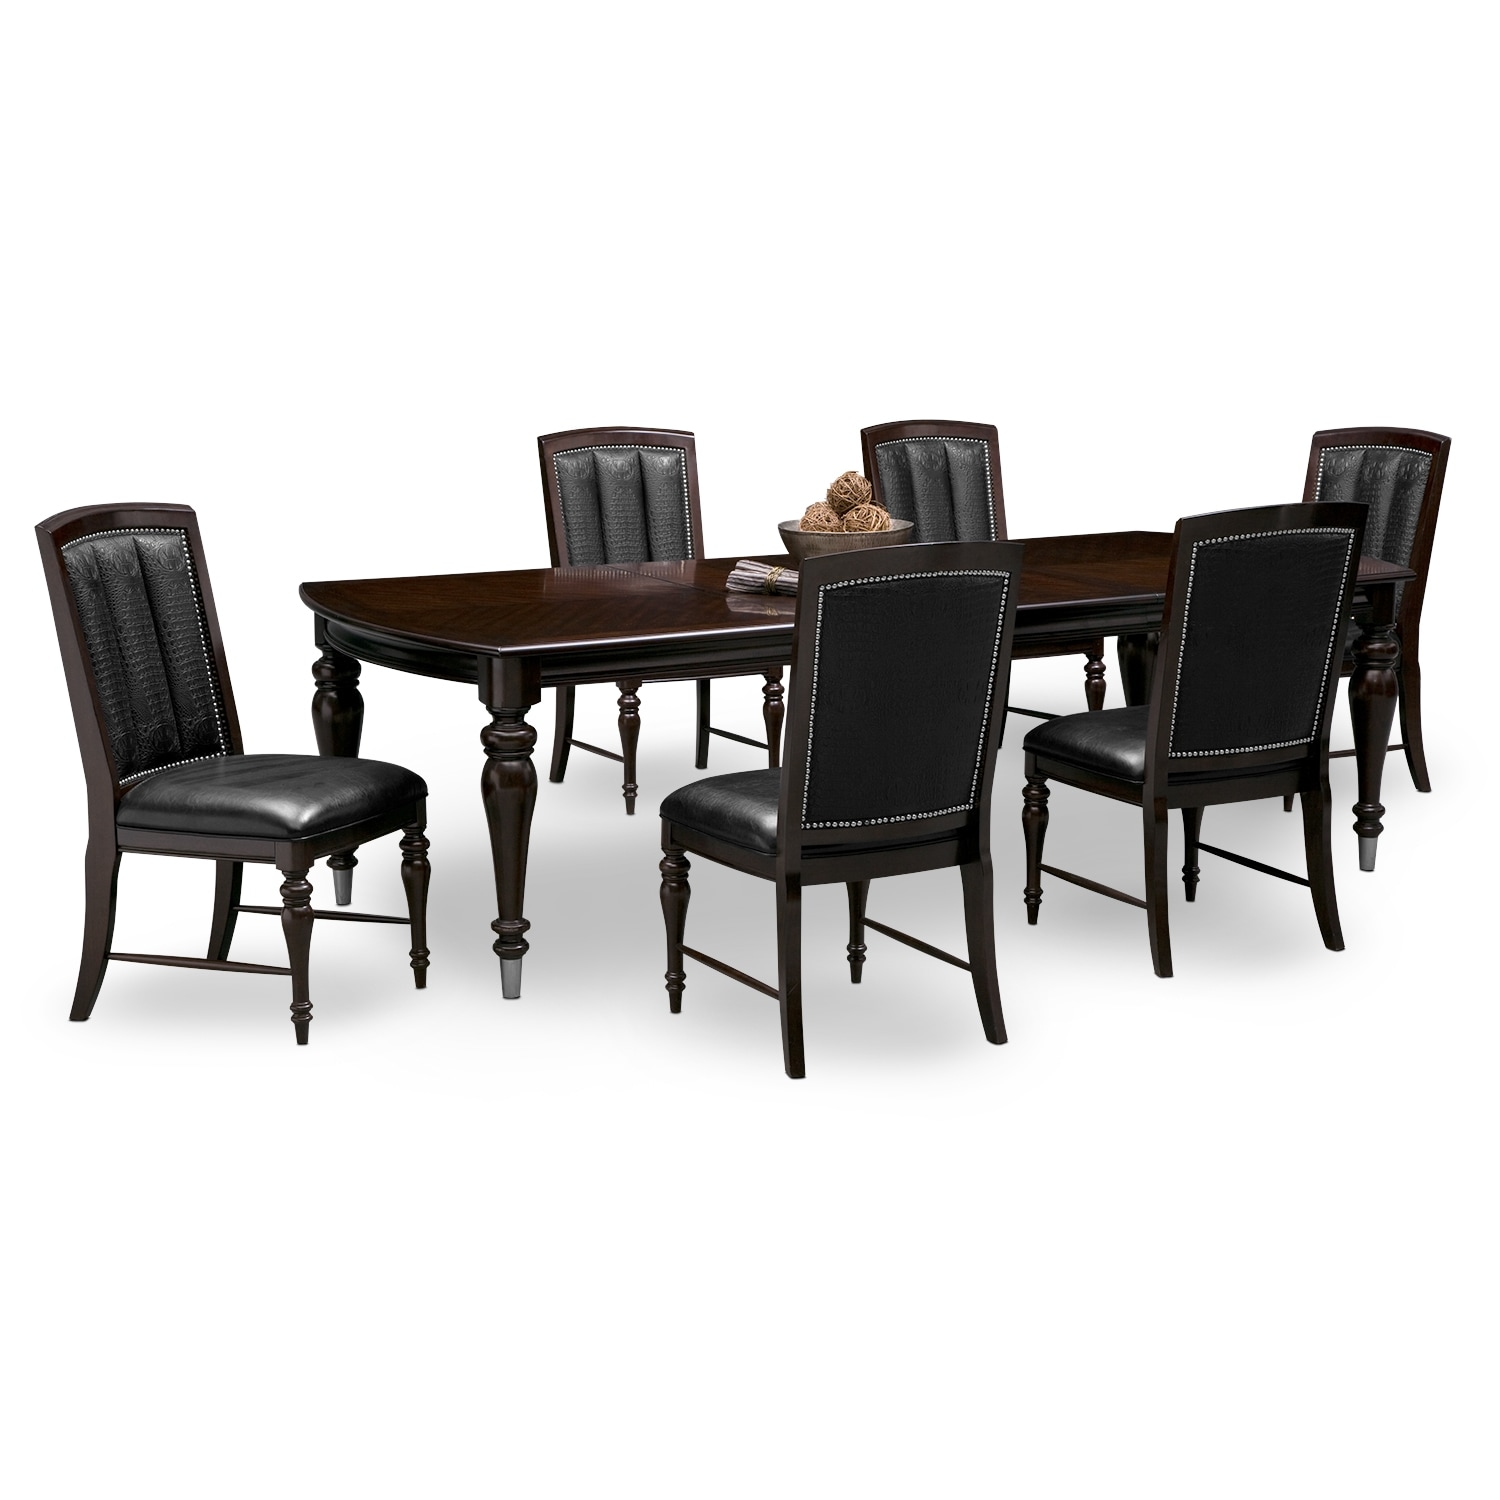 Esquire 7 Pc. Dining Room